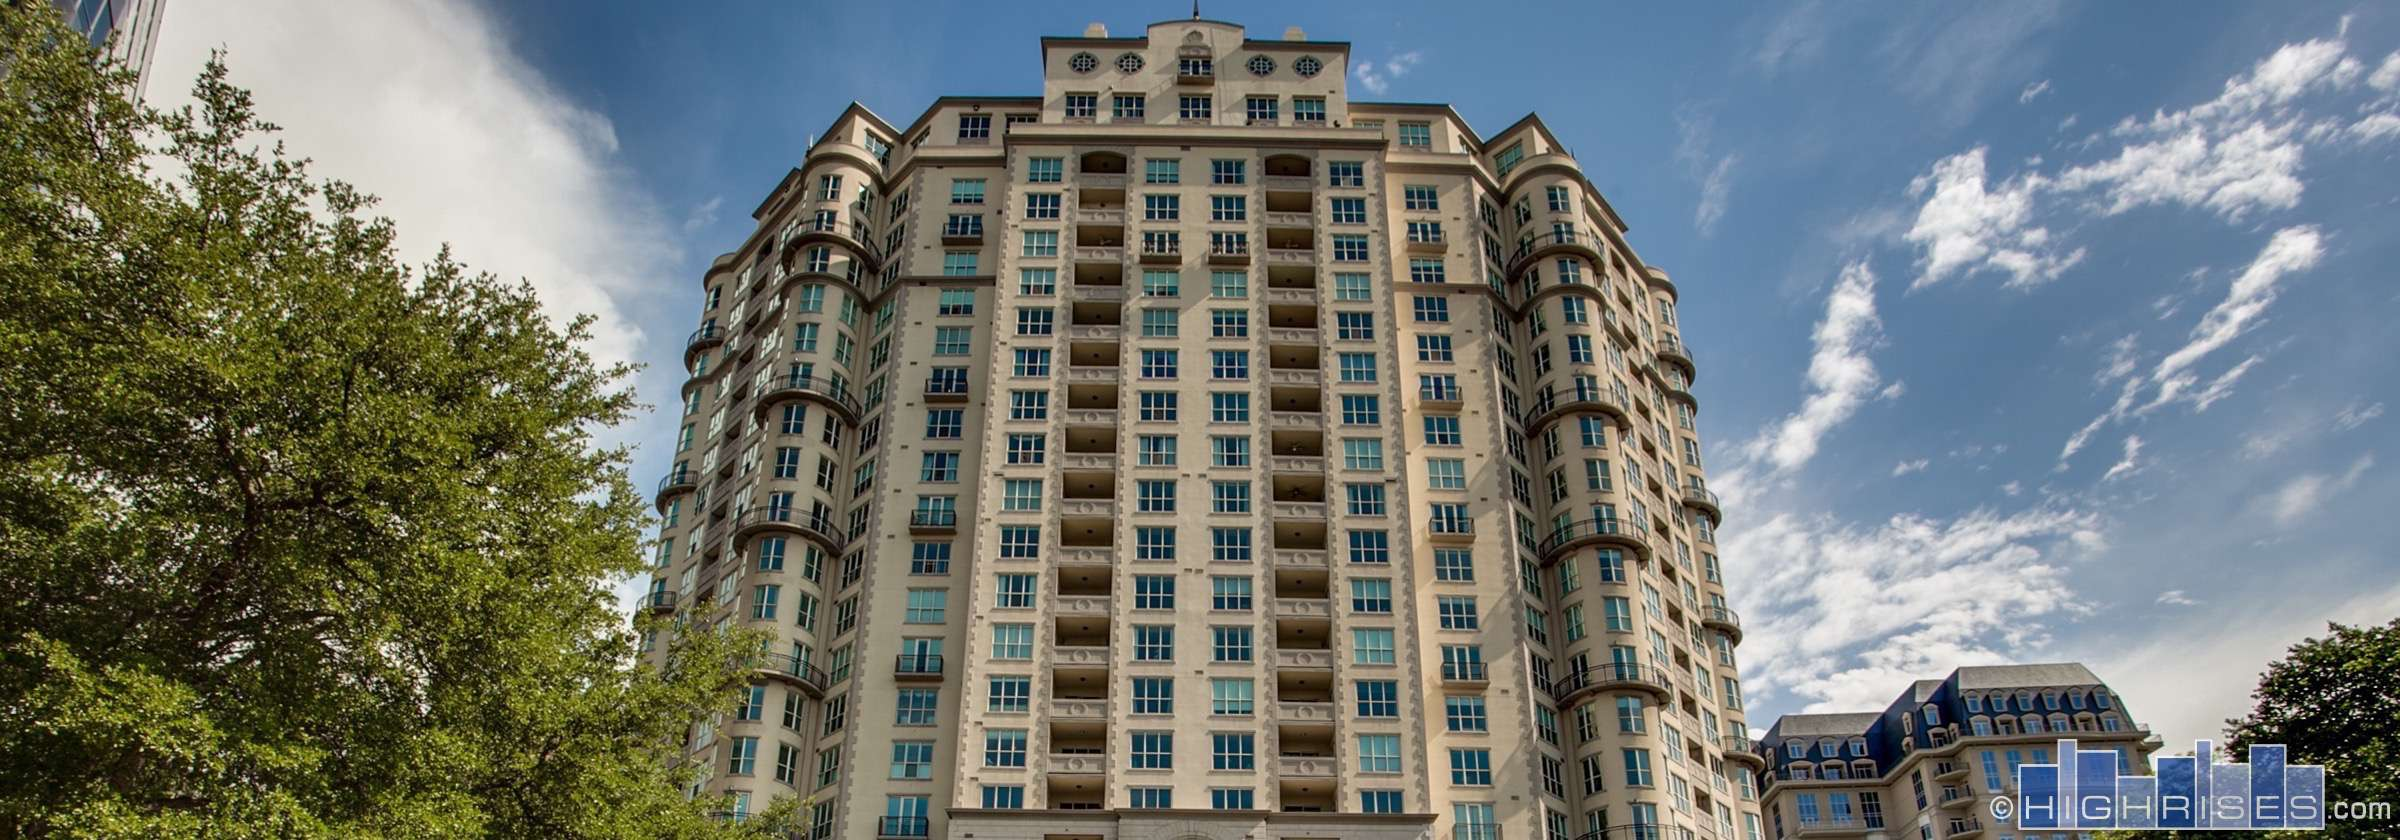 mayfair condos of dallas tx 3401 lee parkway